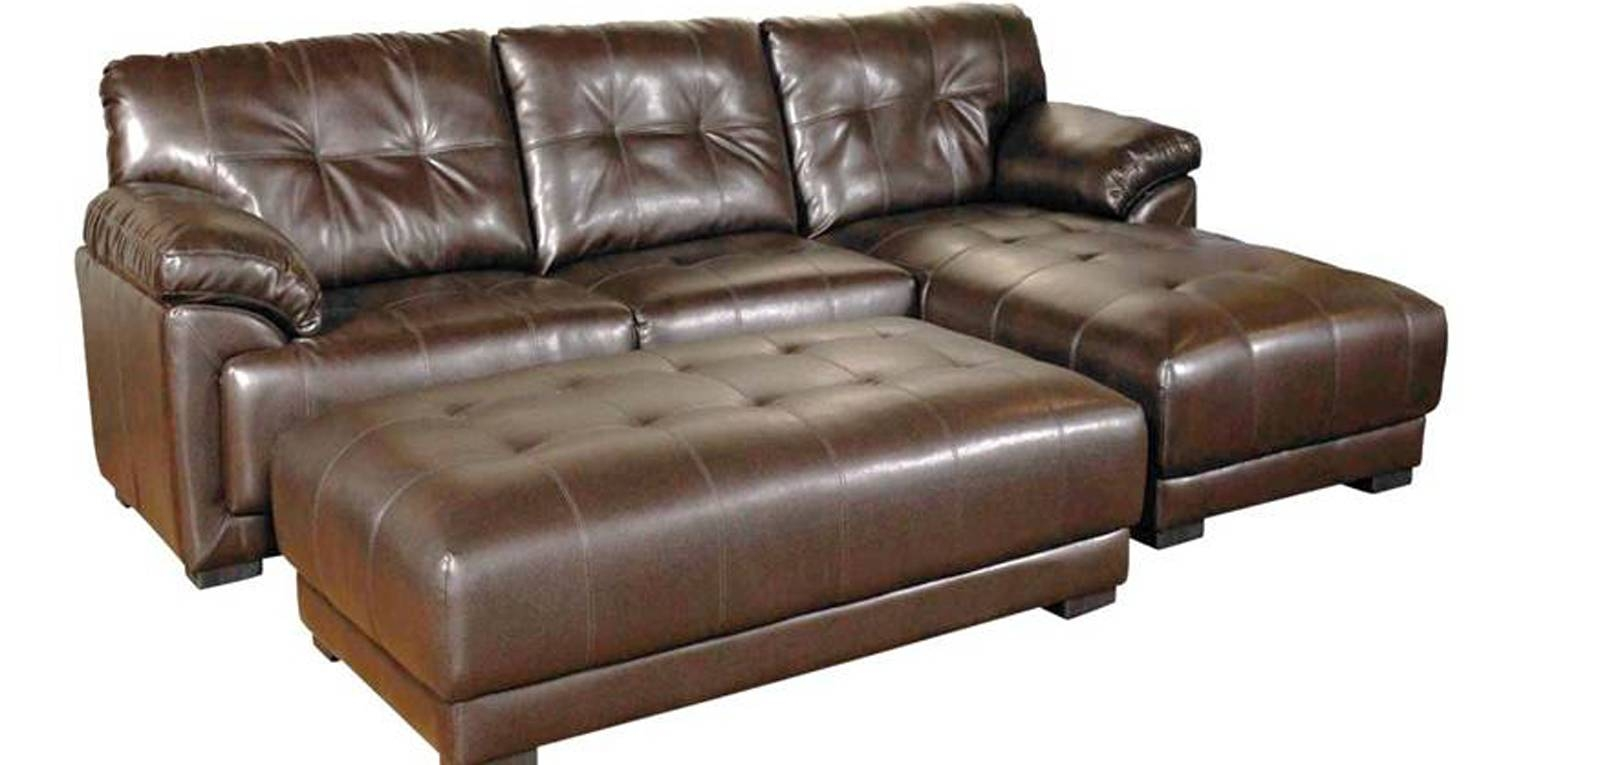 Furniture: Full Grain Leather Sectional | Brown Sectional Couch throughout Full Grain Leather Sofas (Image 19 of 30)